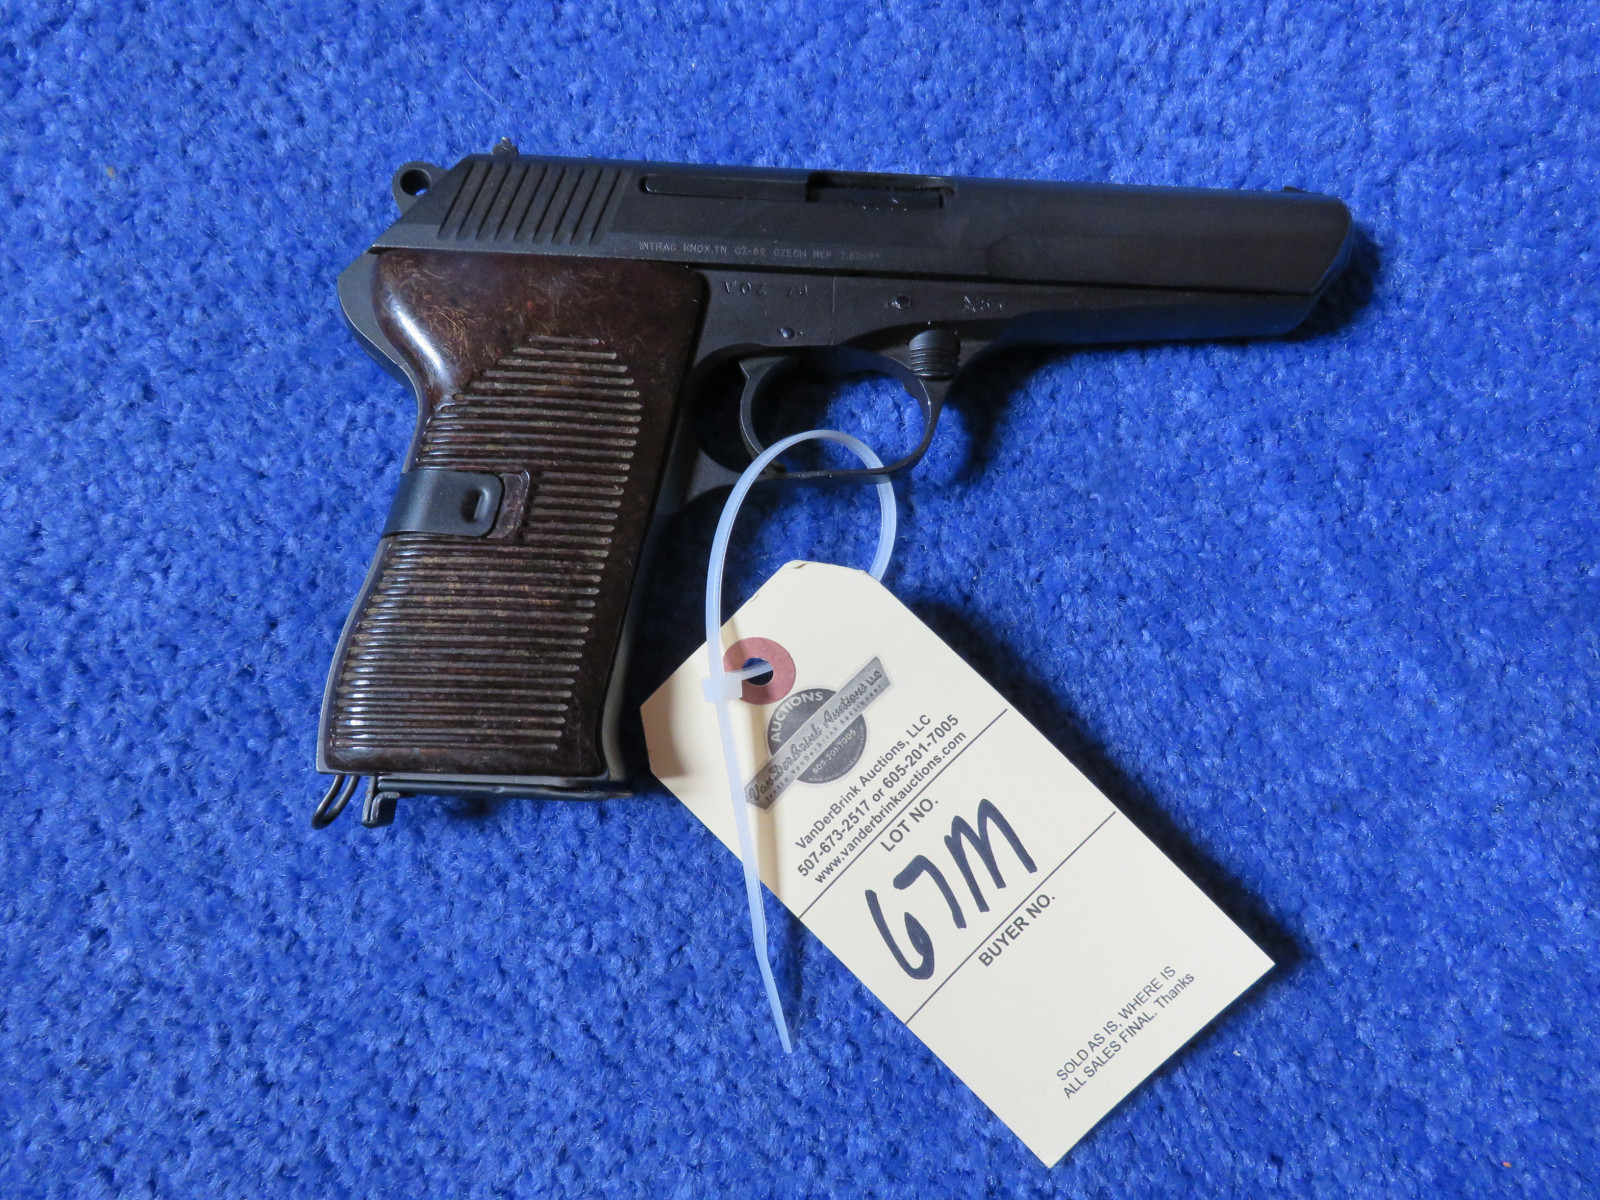 CZECH Republic 7.62x25 Semi Auto Handgun - Image 3